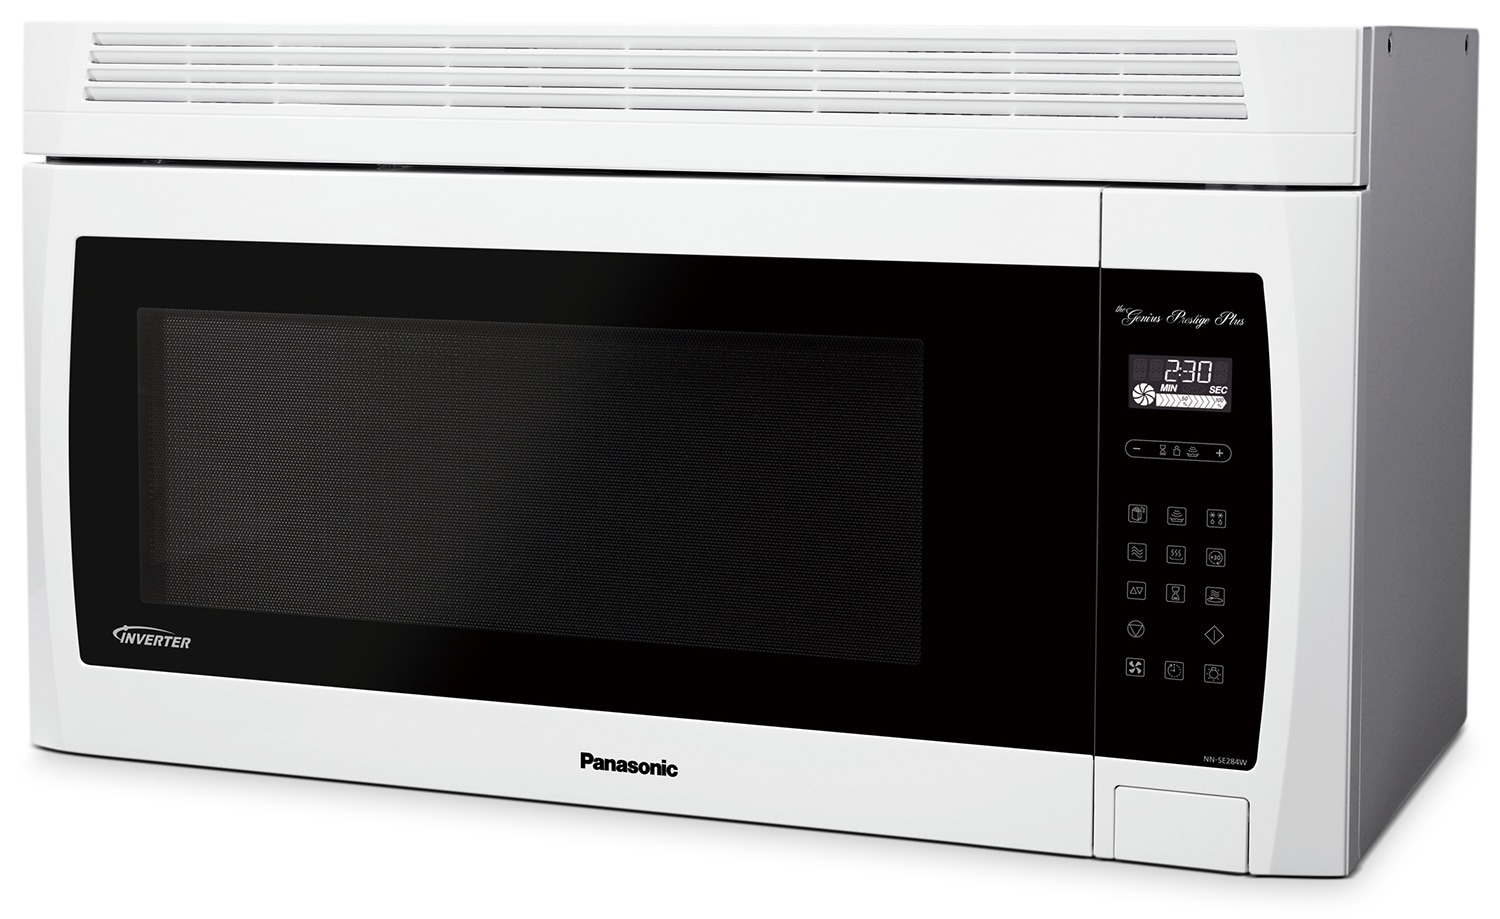 Panasonic® 2.0 Cu. Ft. Genius® Prestige® Plus Over-the-Range Microwave Oven - White